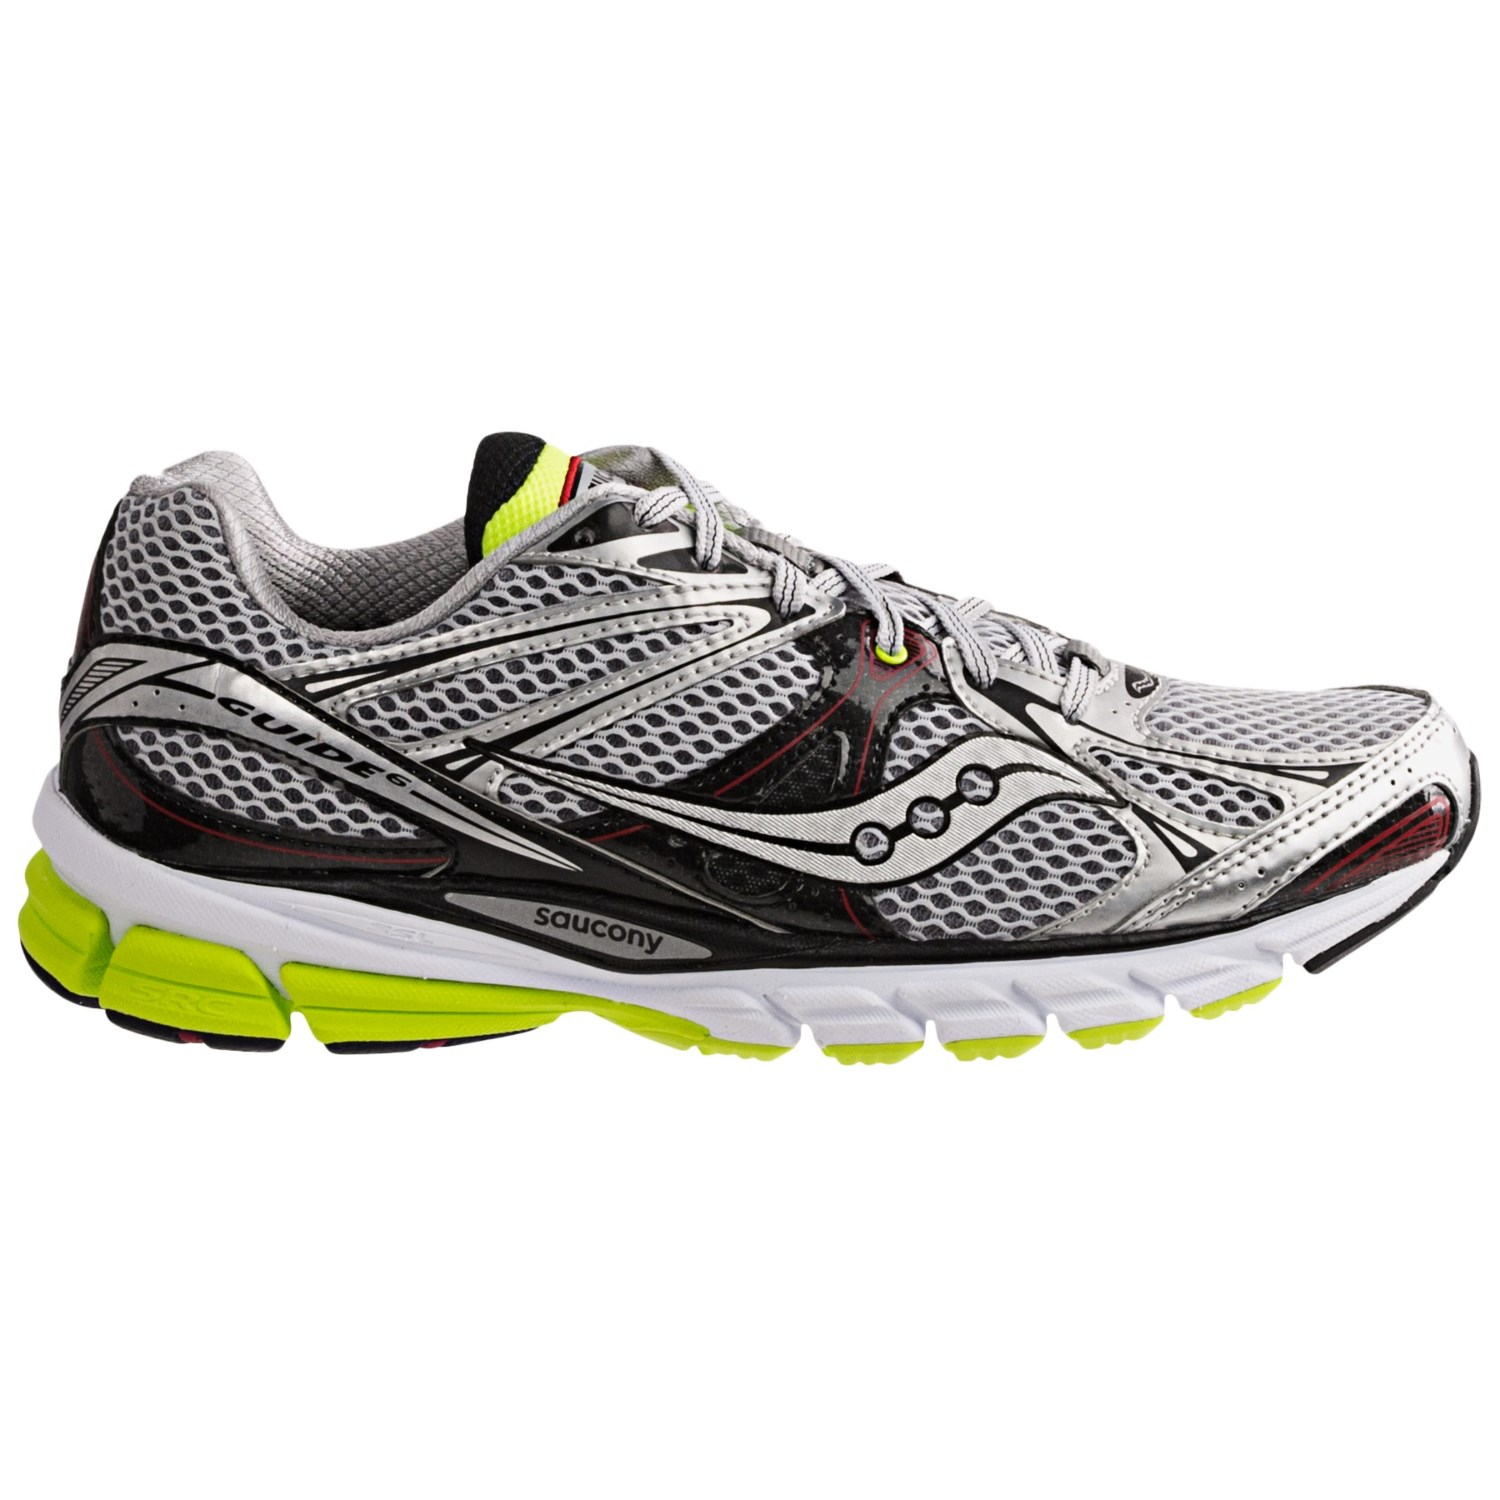 Saucony Progrid Stability Running Shoe